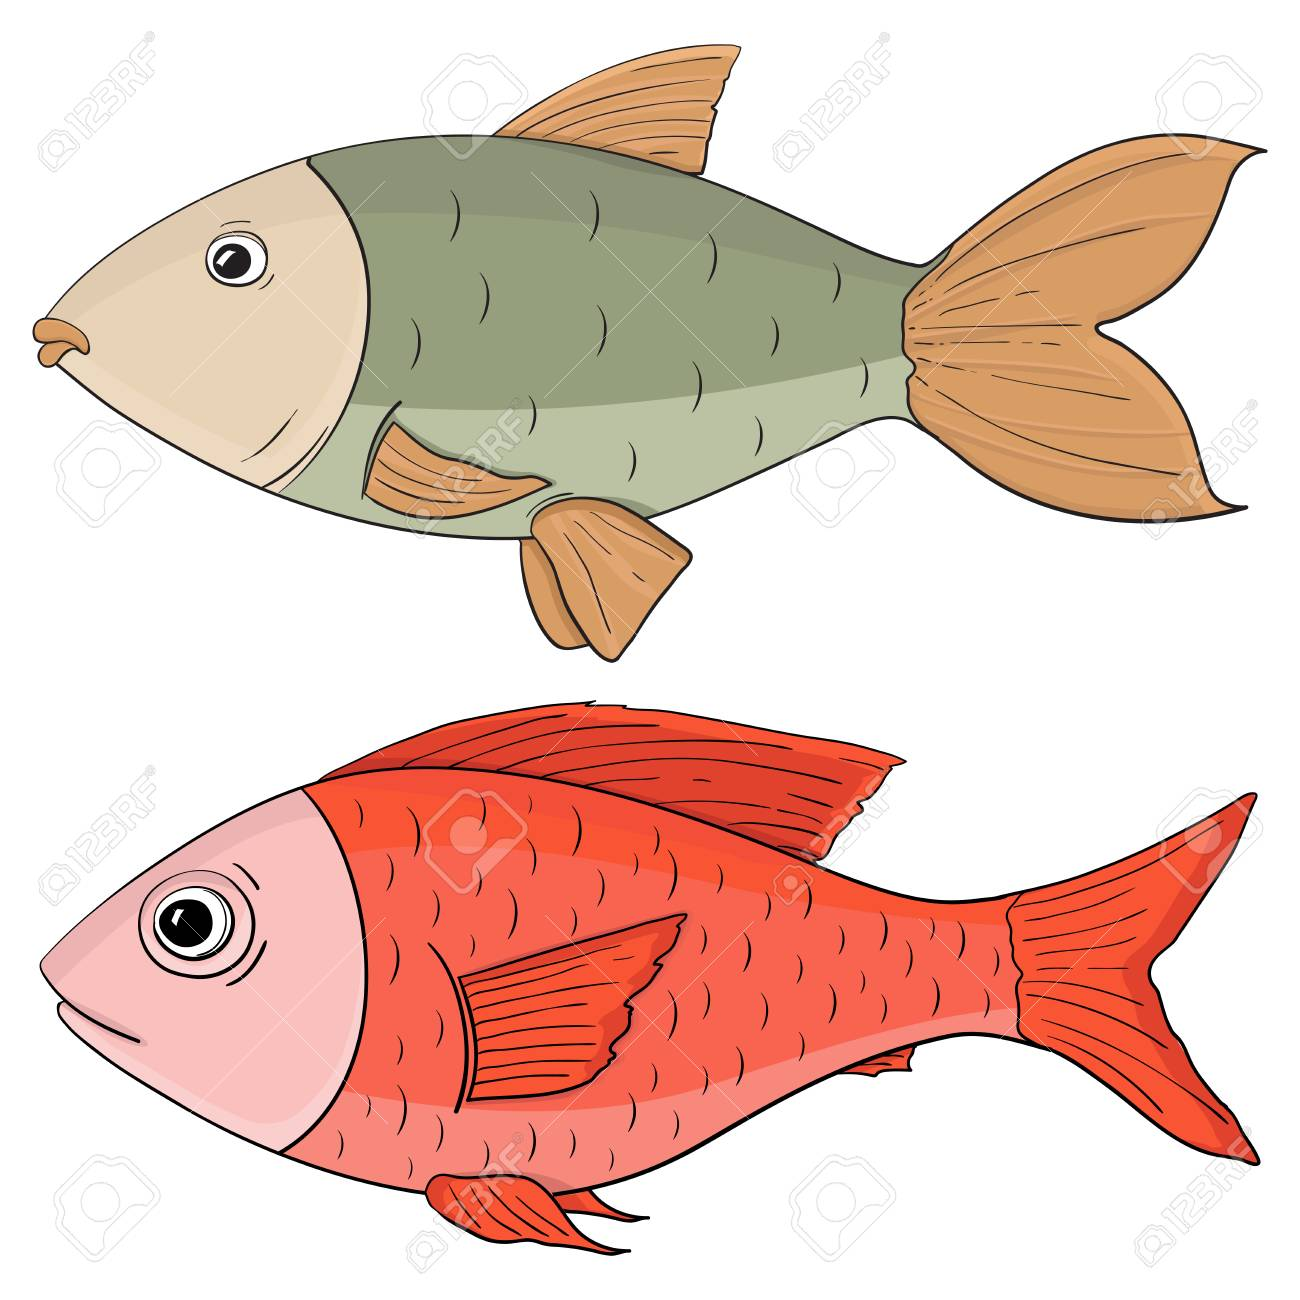 Fish. Colored Hand Drawing Royalty Free Cliparts, Vectors, And Stock ...